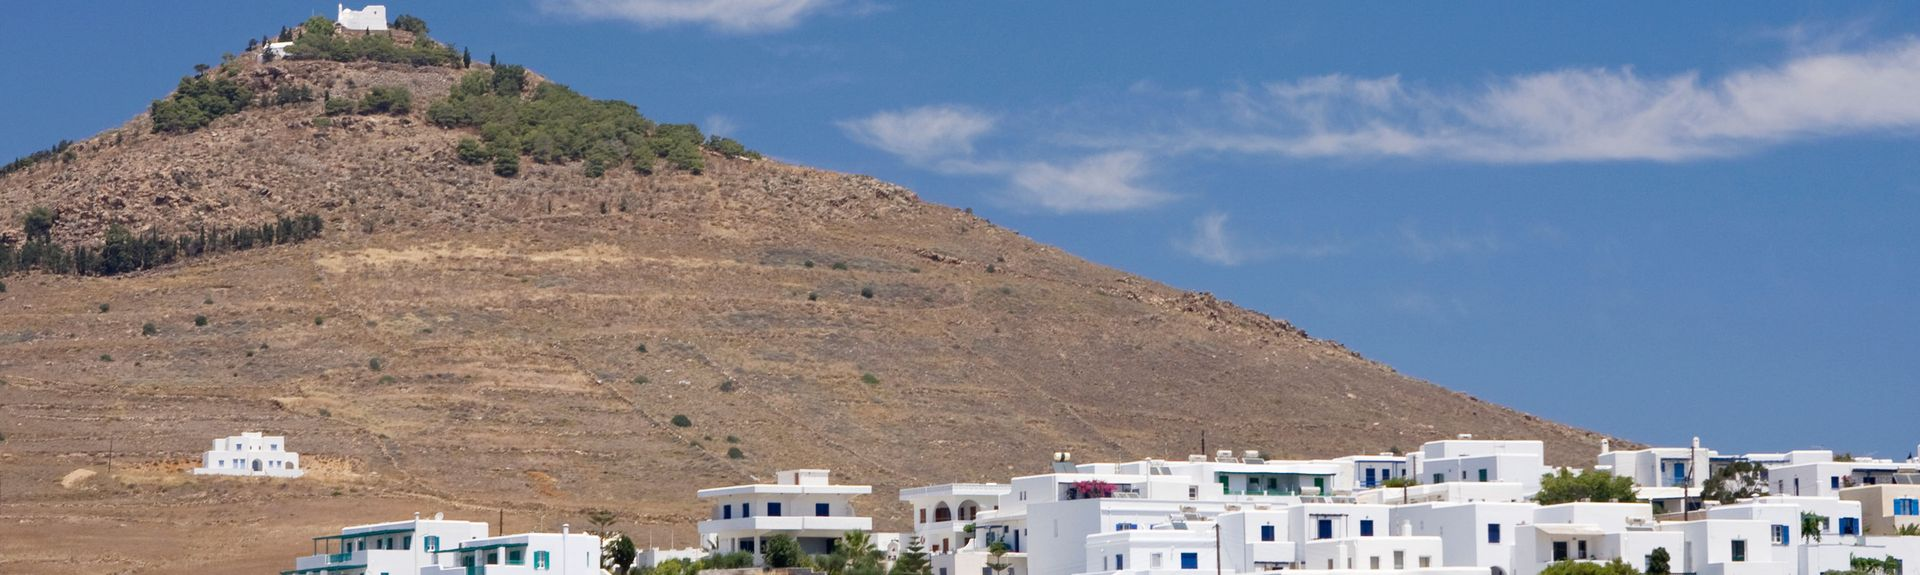 Location Maison Paros Paros Gr Vacation Rentals Houses More Homeaway